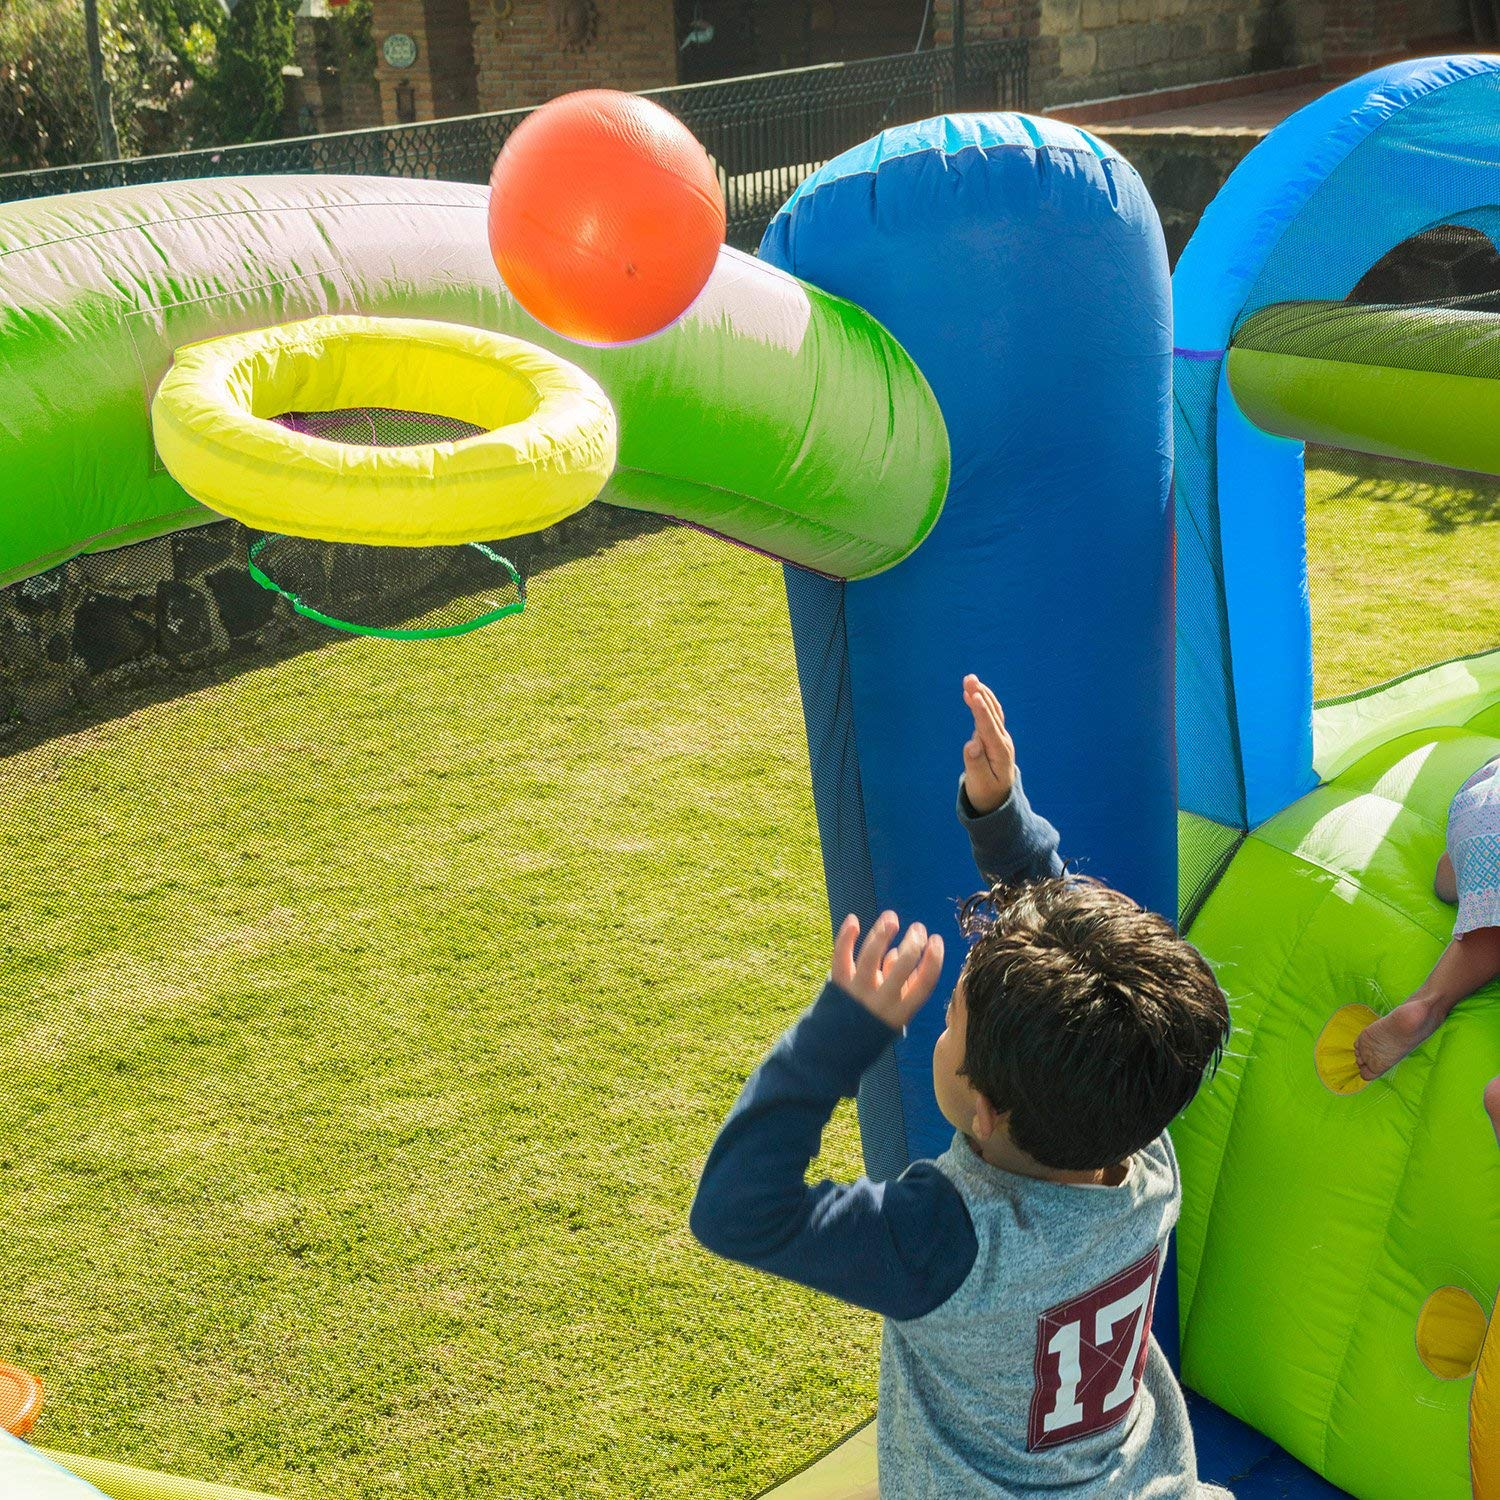 Sportspower My Ist Jump N Play with Ball Pit by Sportspower (Image #2)